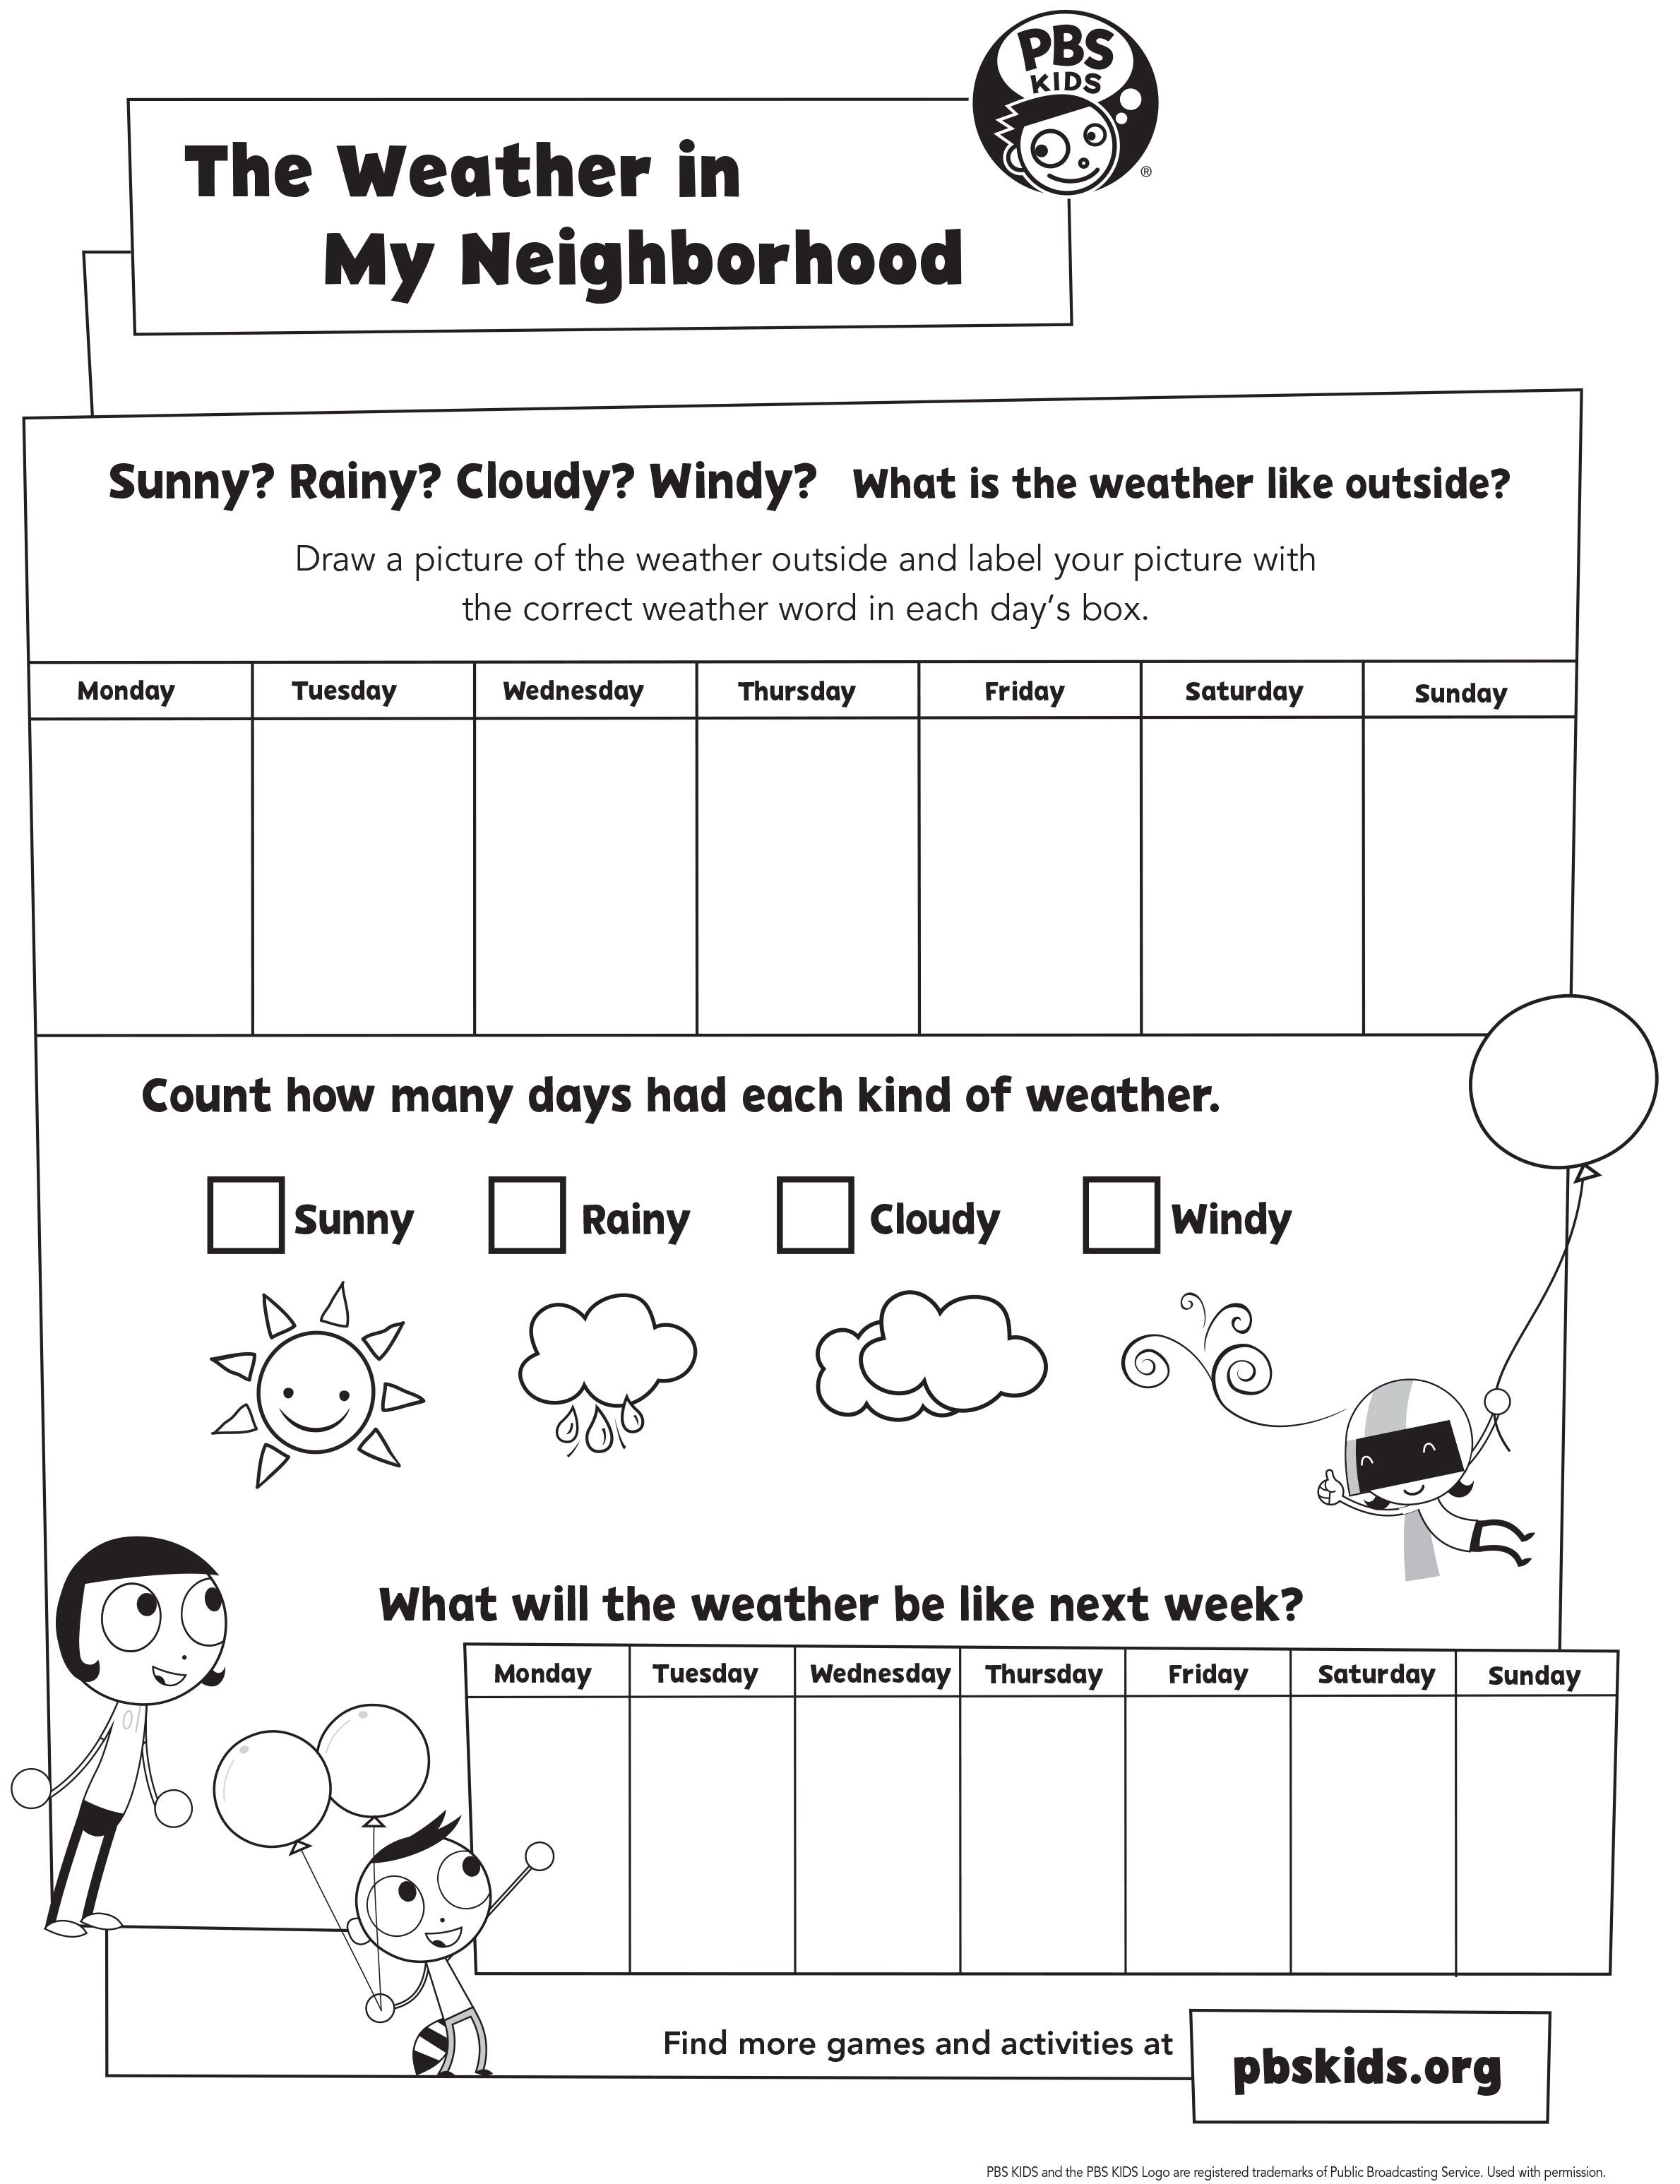 explore the weather in your neighborhood with this activity from